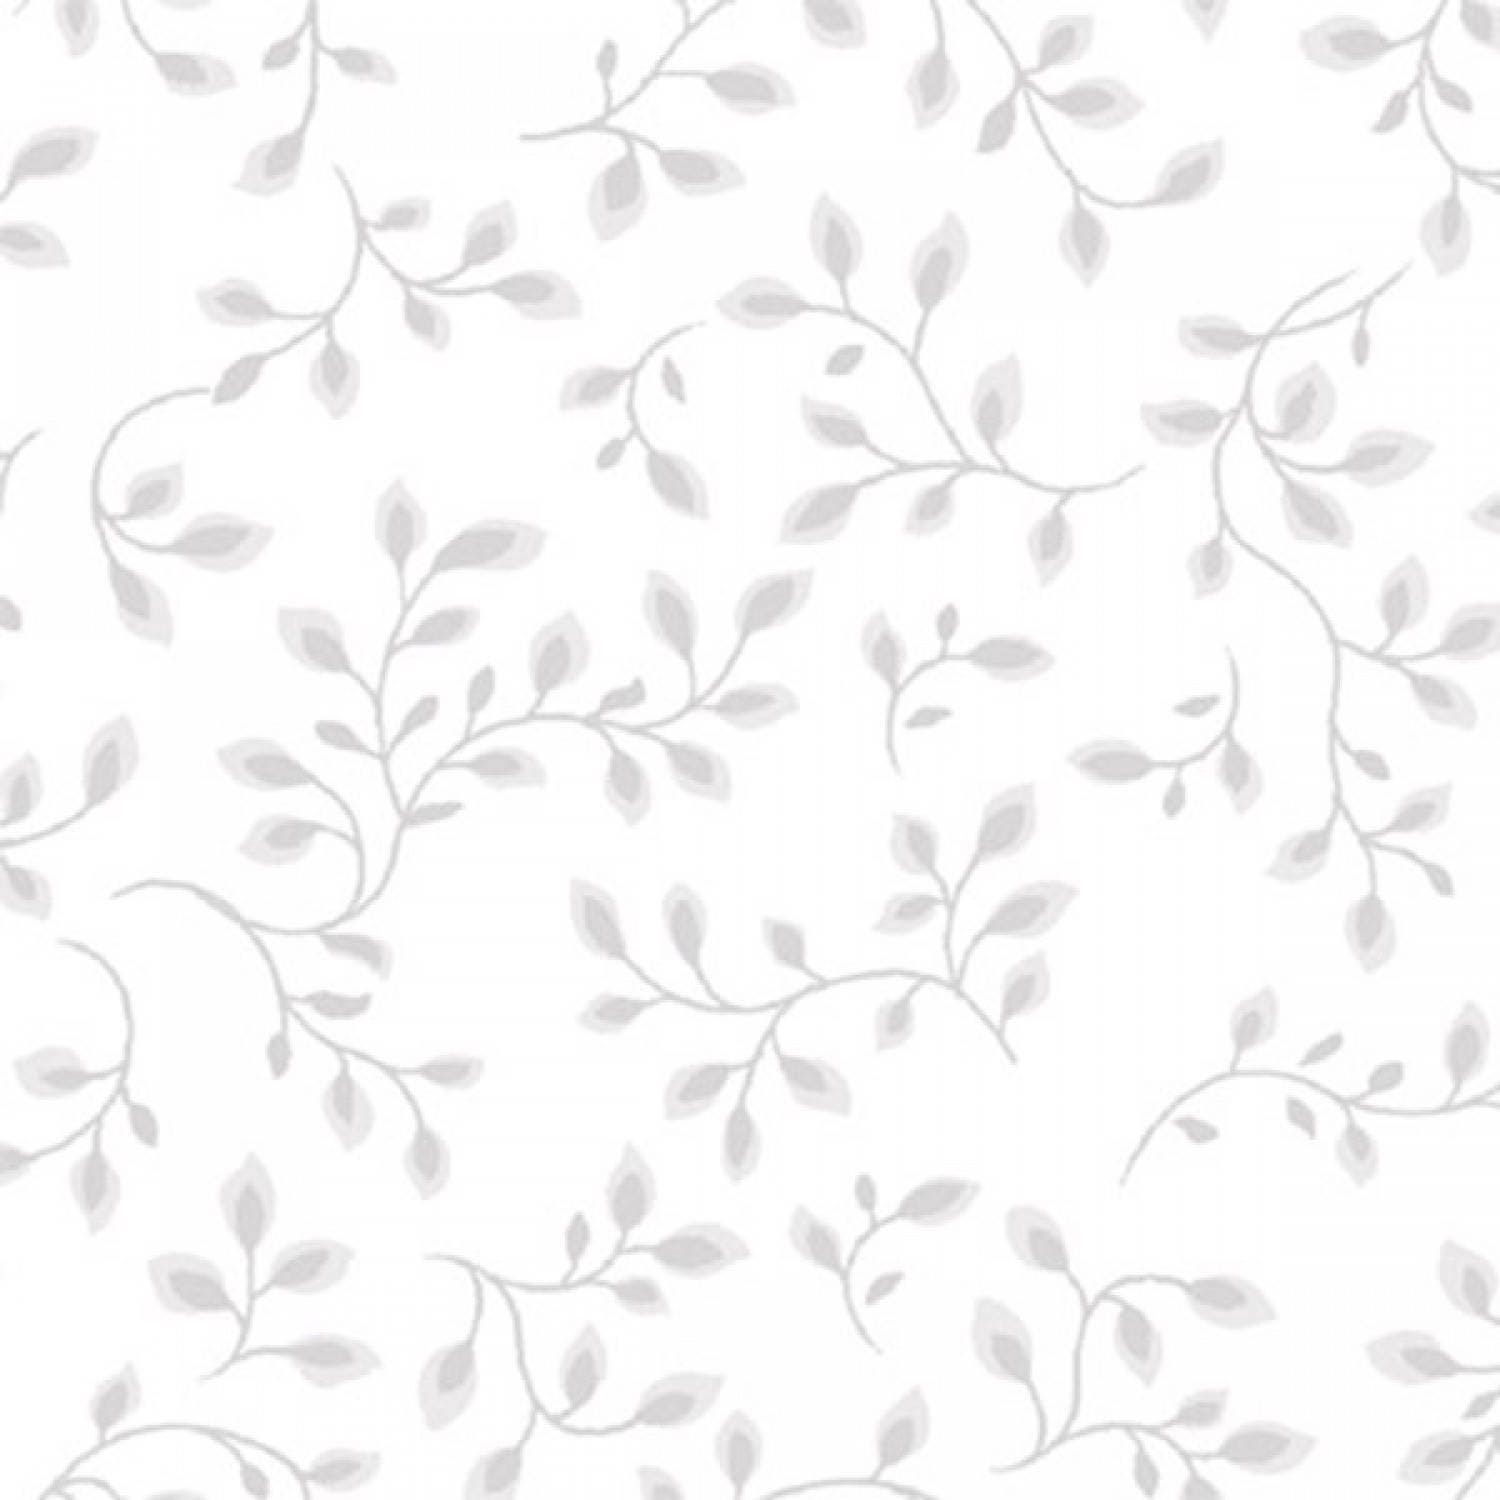 108 Inch White And Grey Vines Leaves Half Yard Wide